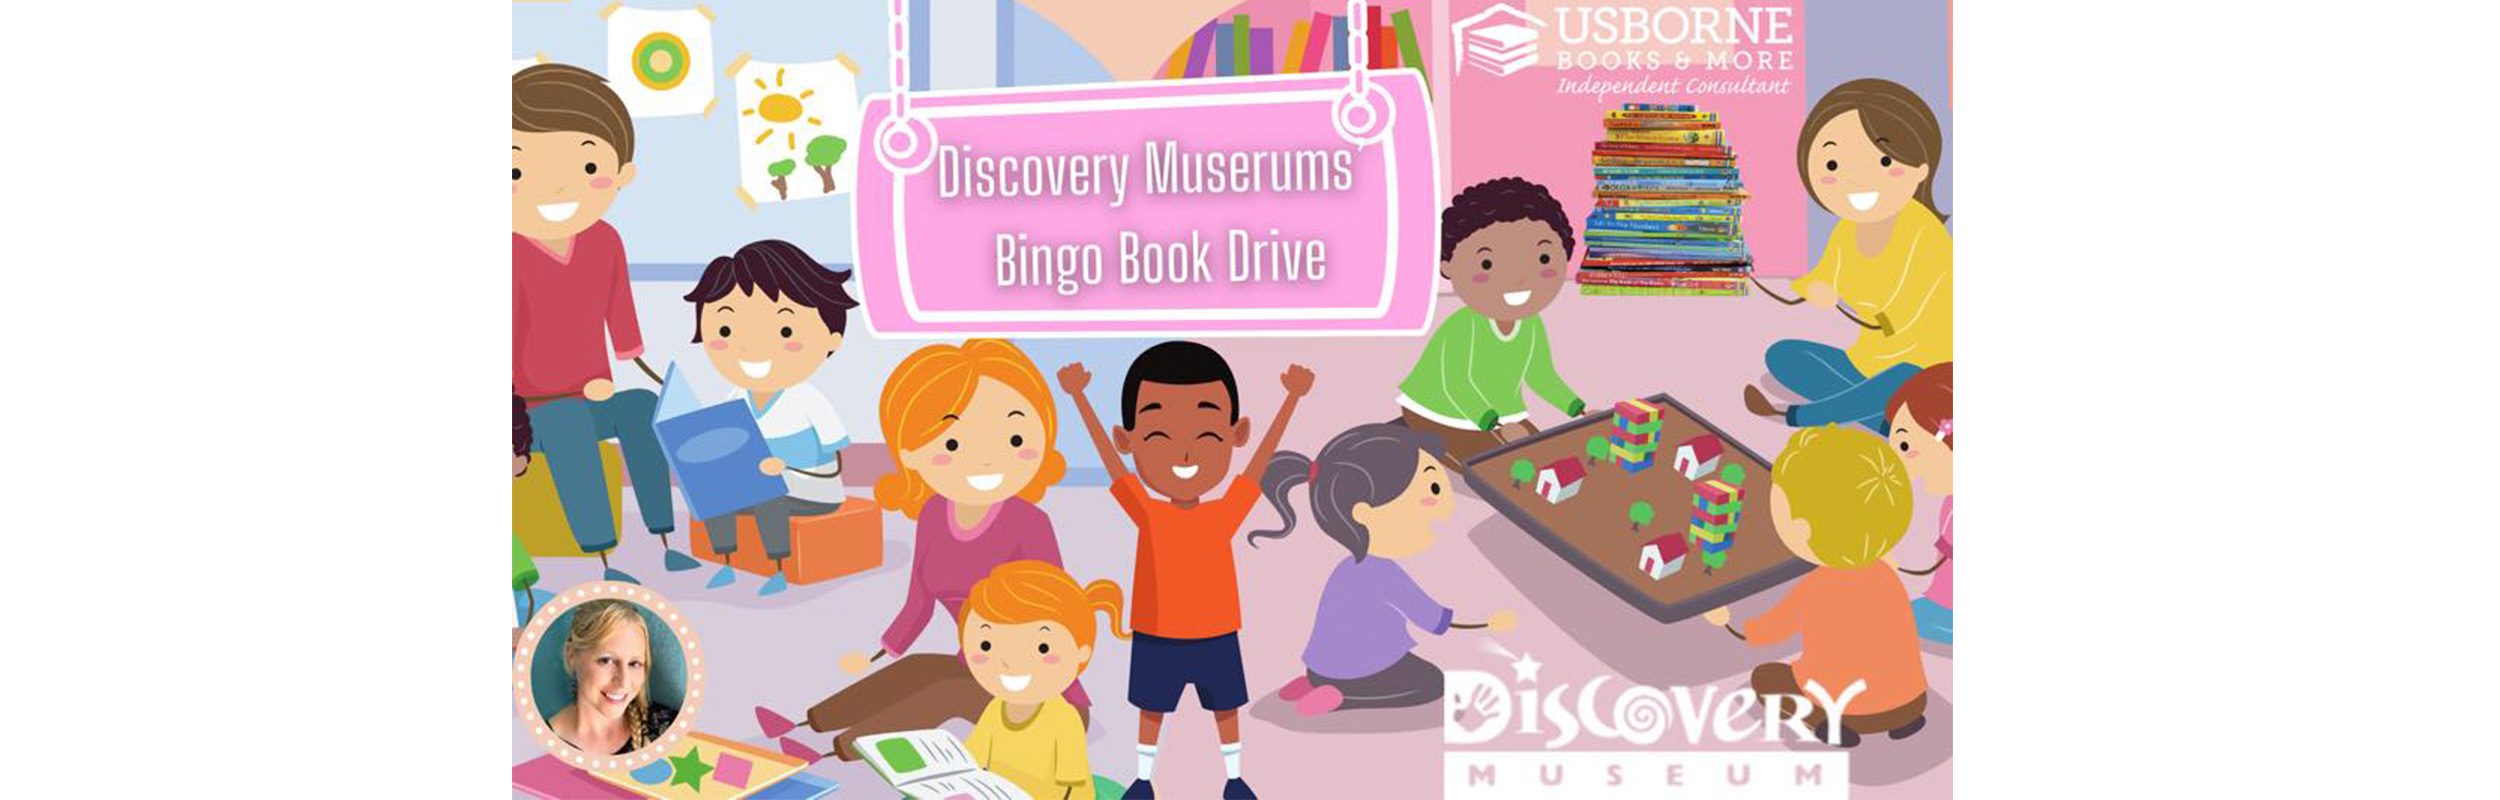 Discovery Museums' BINGO Book Drive!